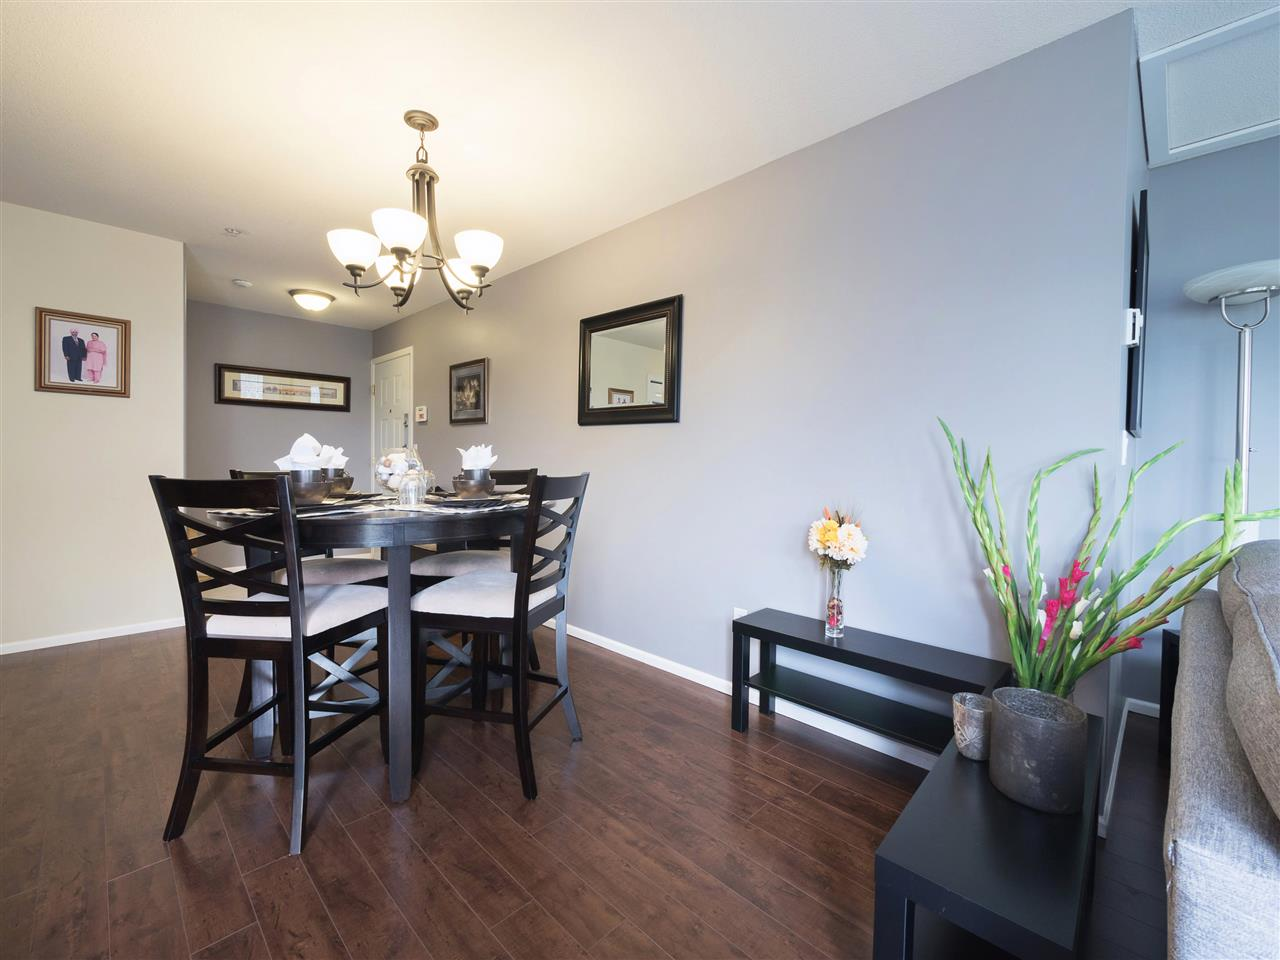 Condo Apartment at 301 1558 GRANT AVENUE, Unit 301, Port Coquitlam, British Columbia. Image 5